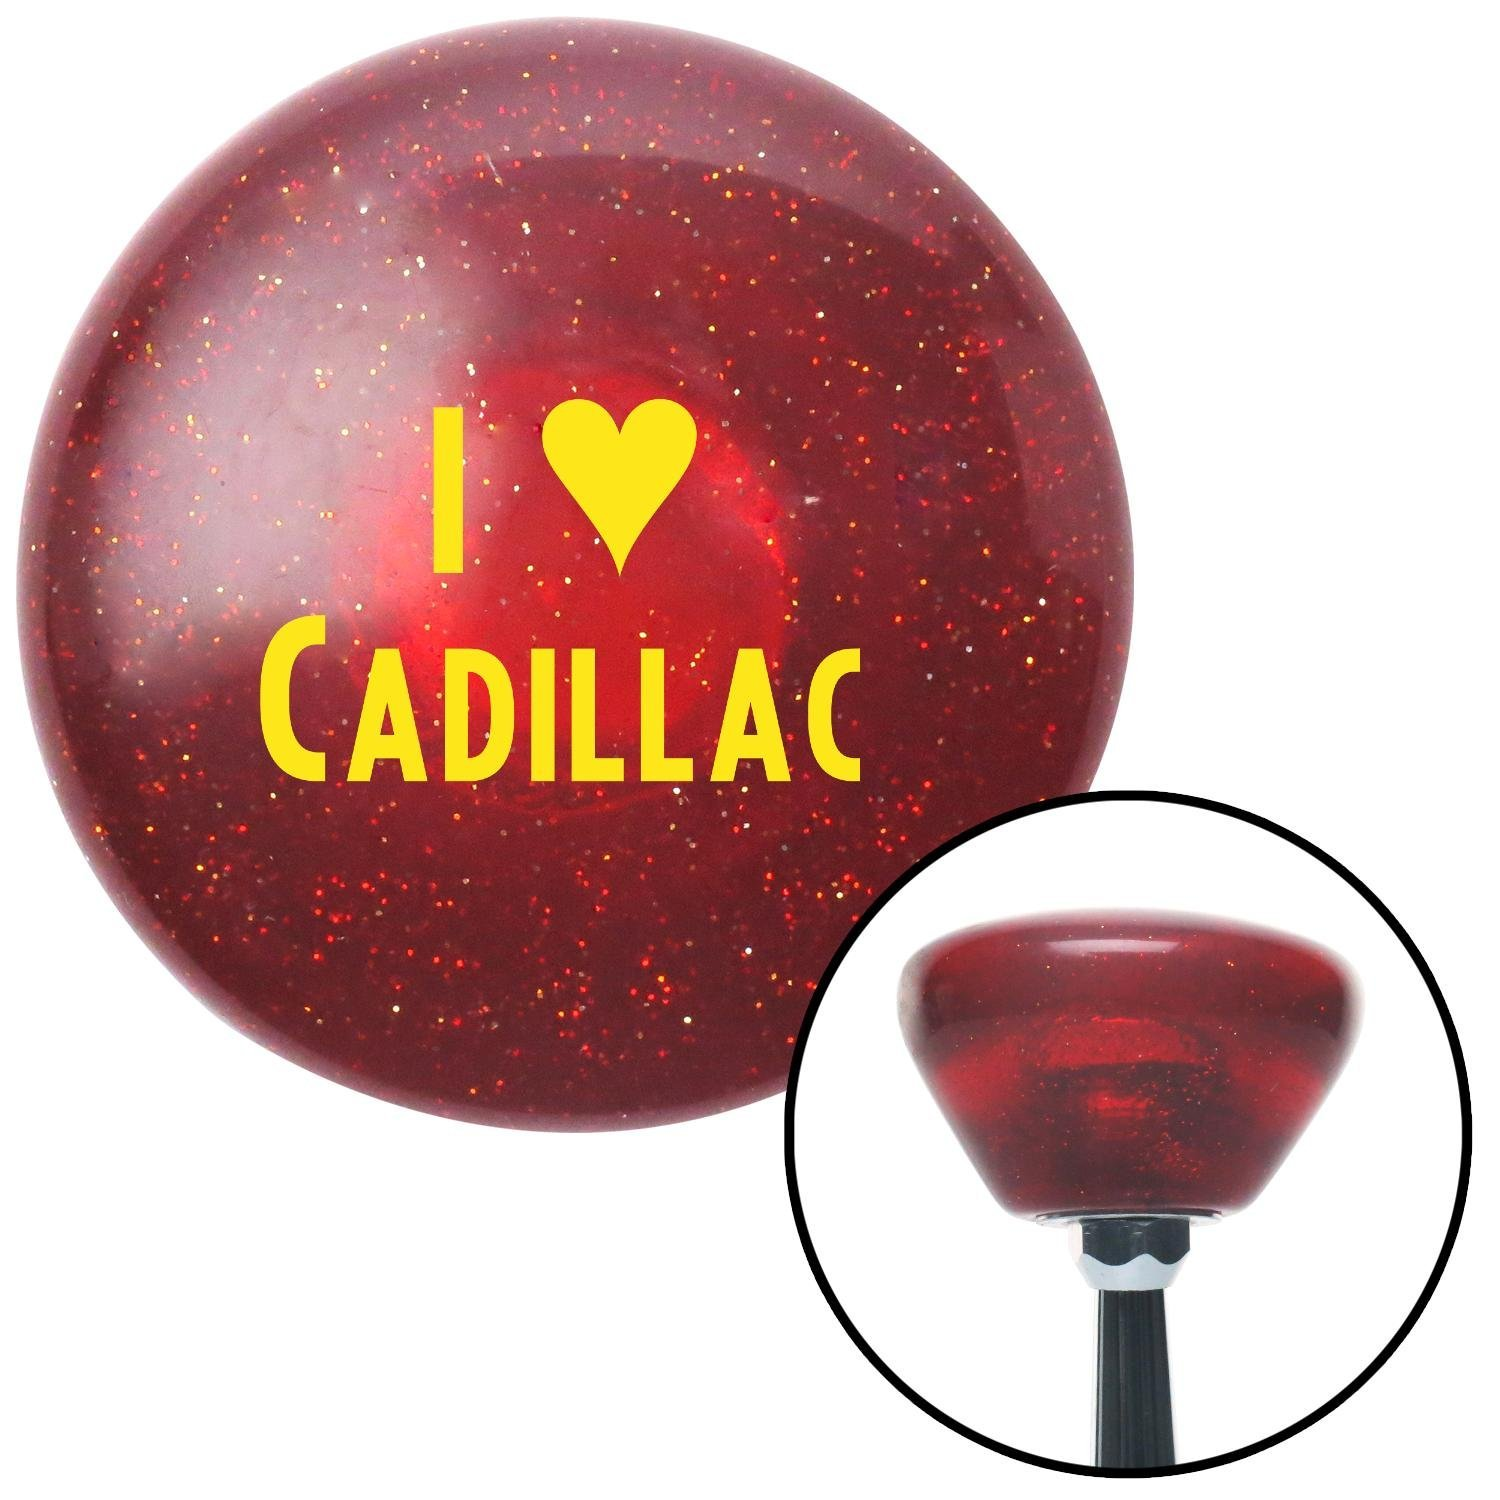 Yellow I 3 Cadillac American Shifter 194528 Red Retro Metal Flake Shift Knob with M16 x 1.5 Insert